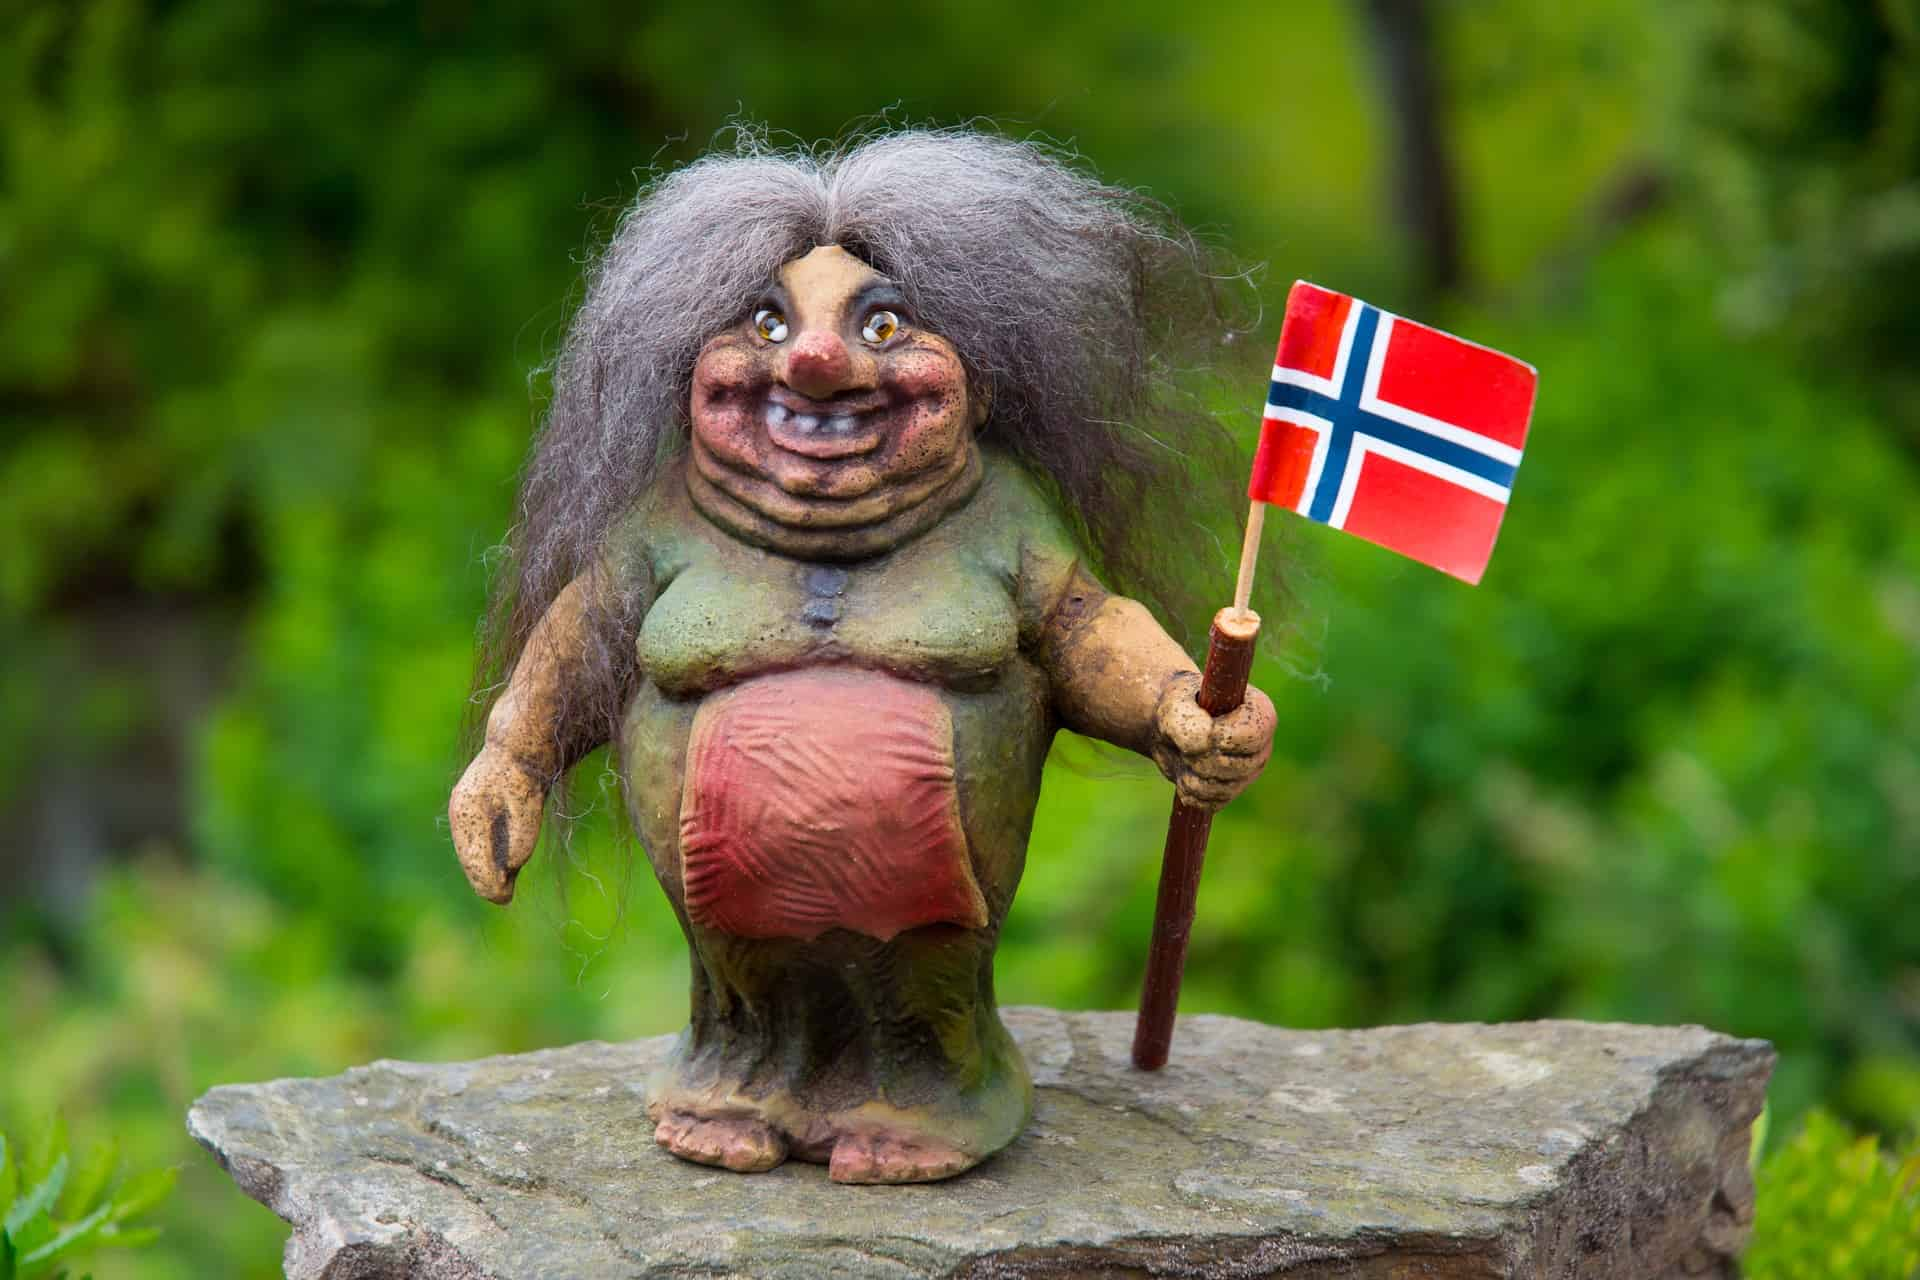 Happy Constitution Day Norway!